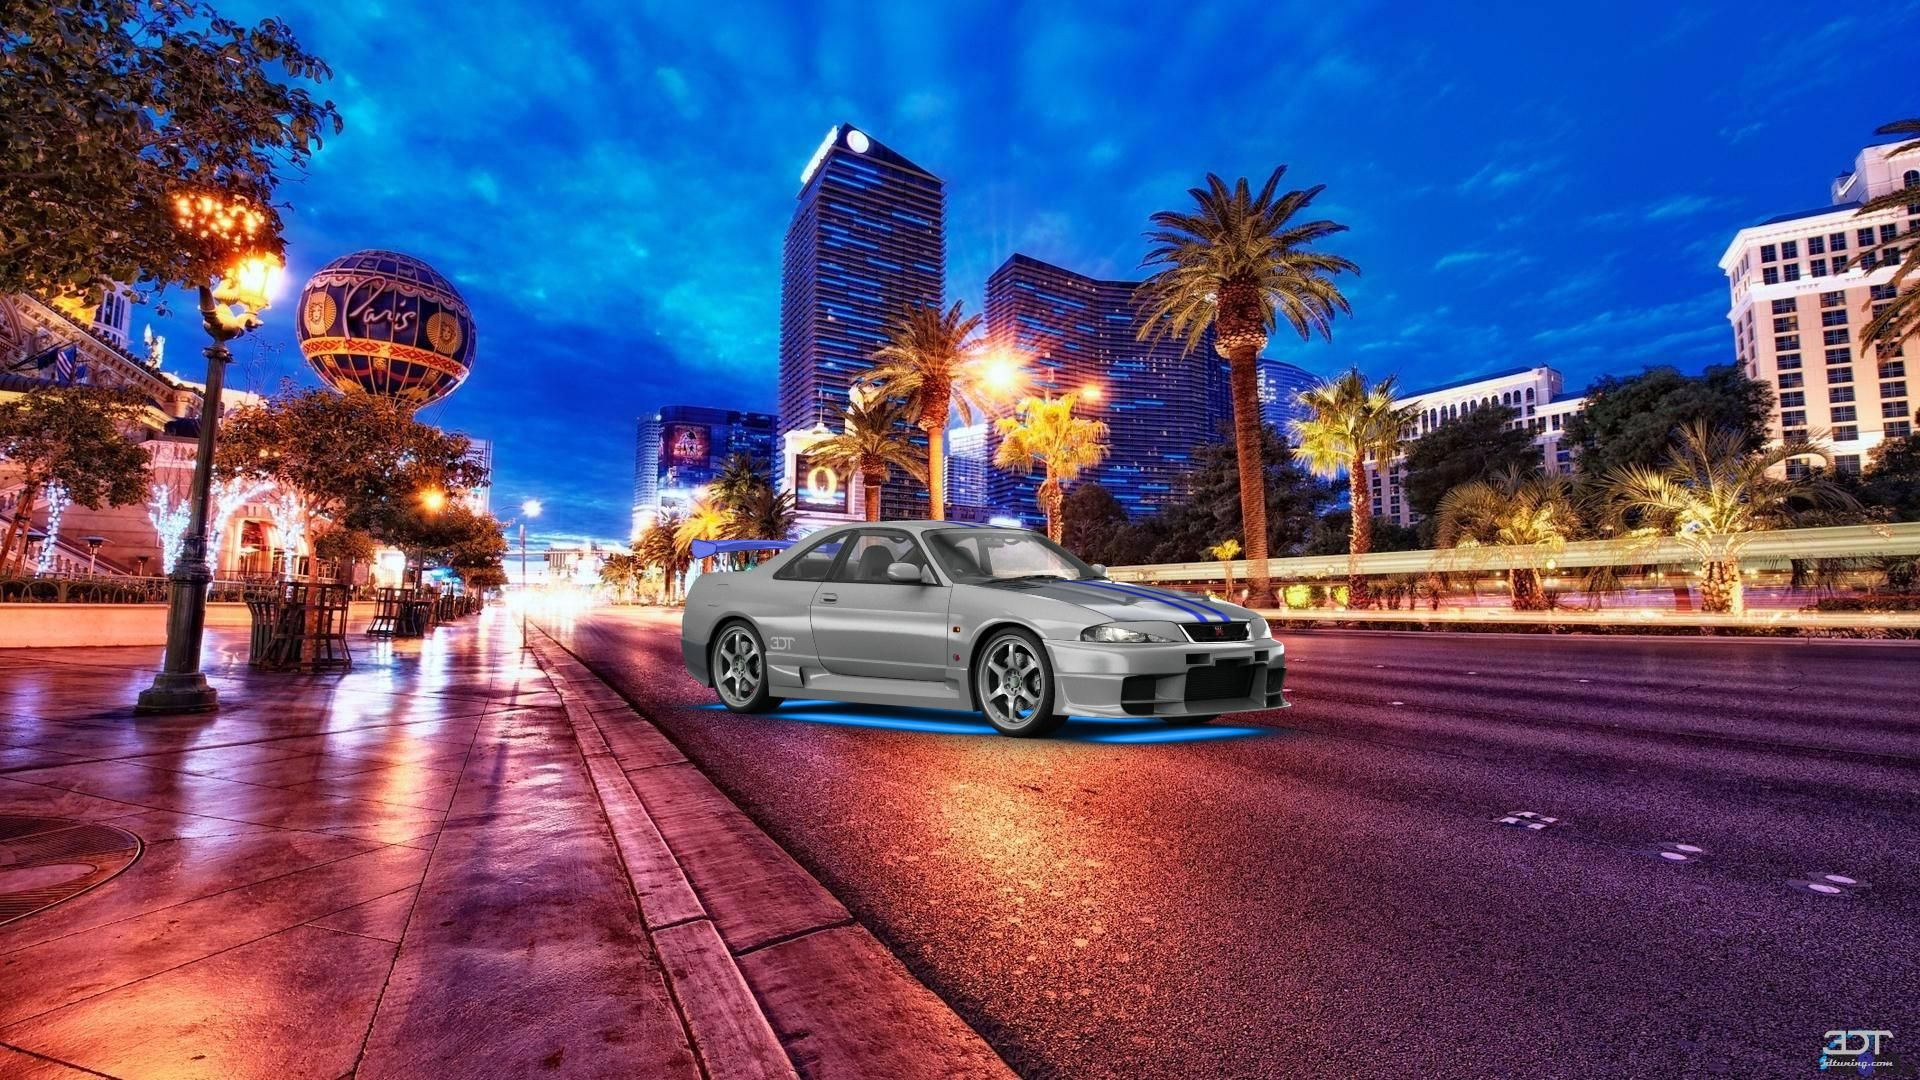 Checkout my tuning #Nissan #SkylineGT-R 1997 at 3DTuning #3dtuning #tuning